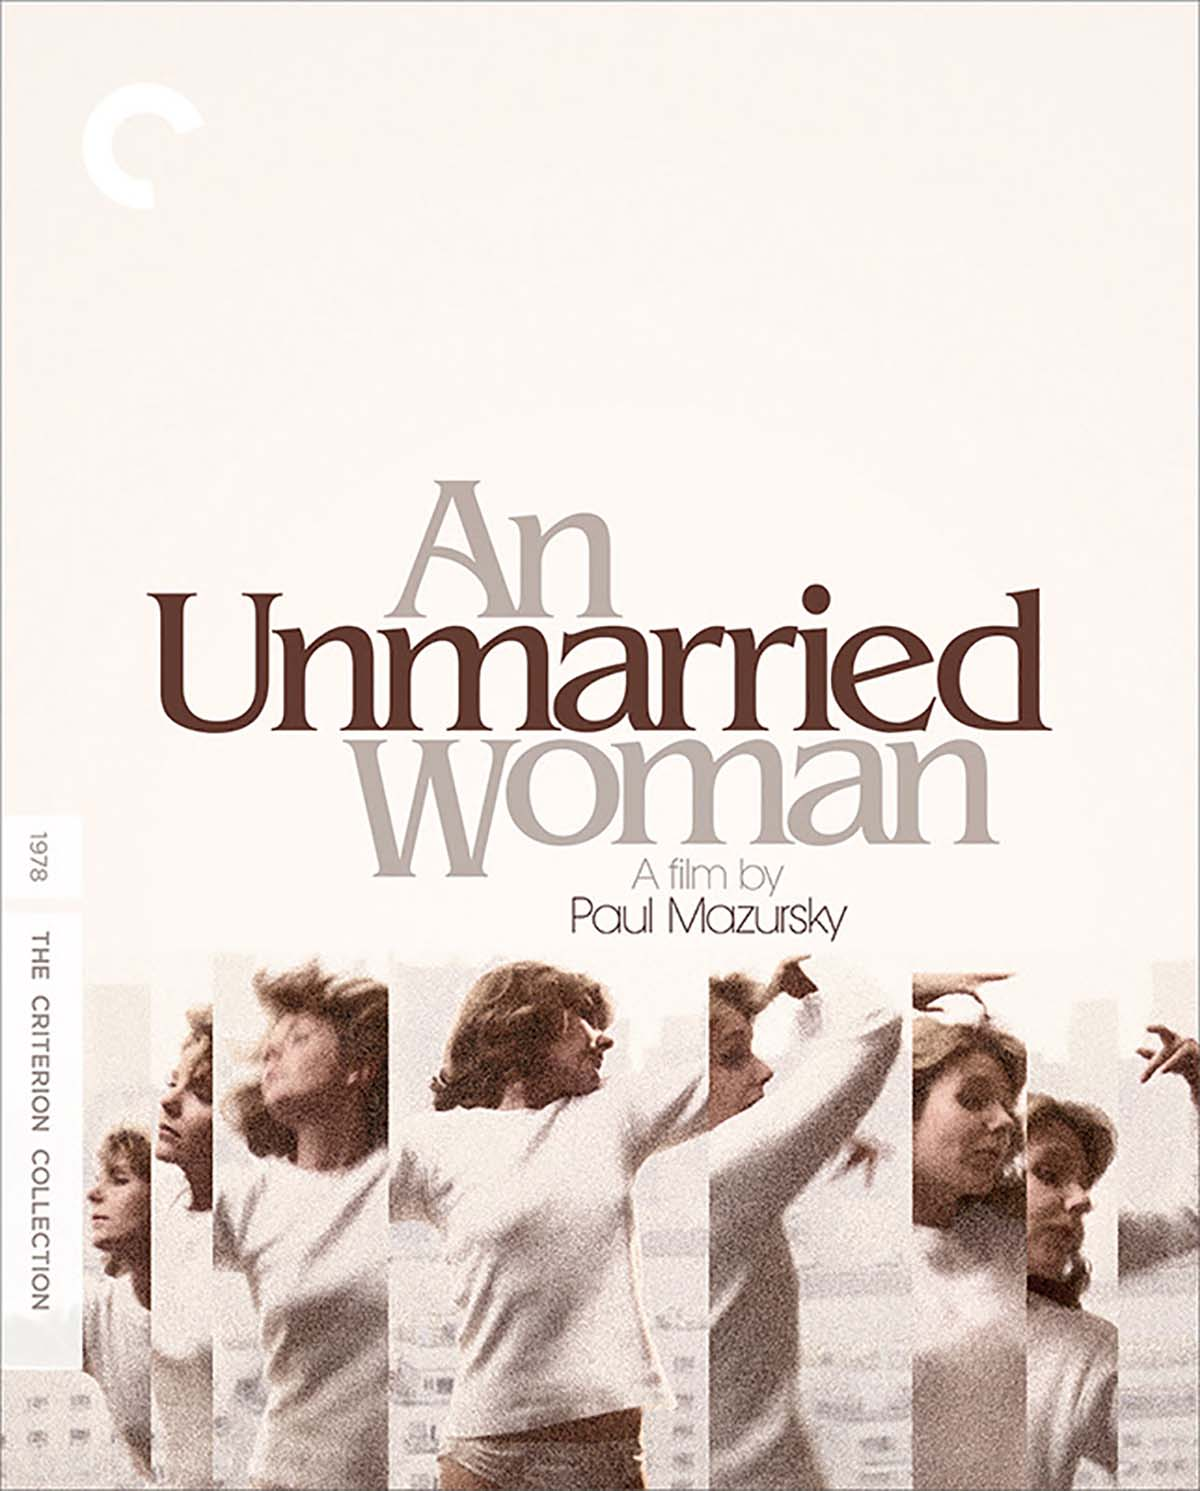 an-unmarried-woman-criterion-cover